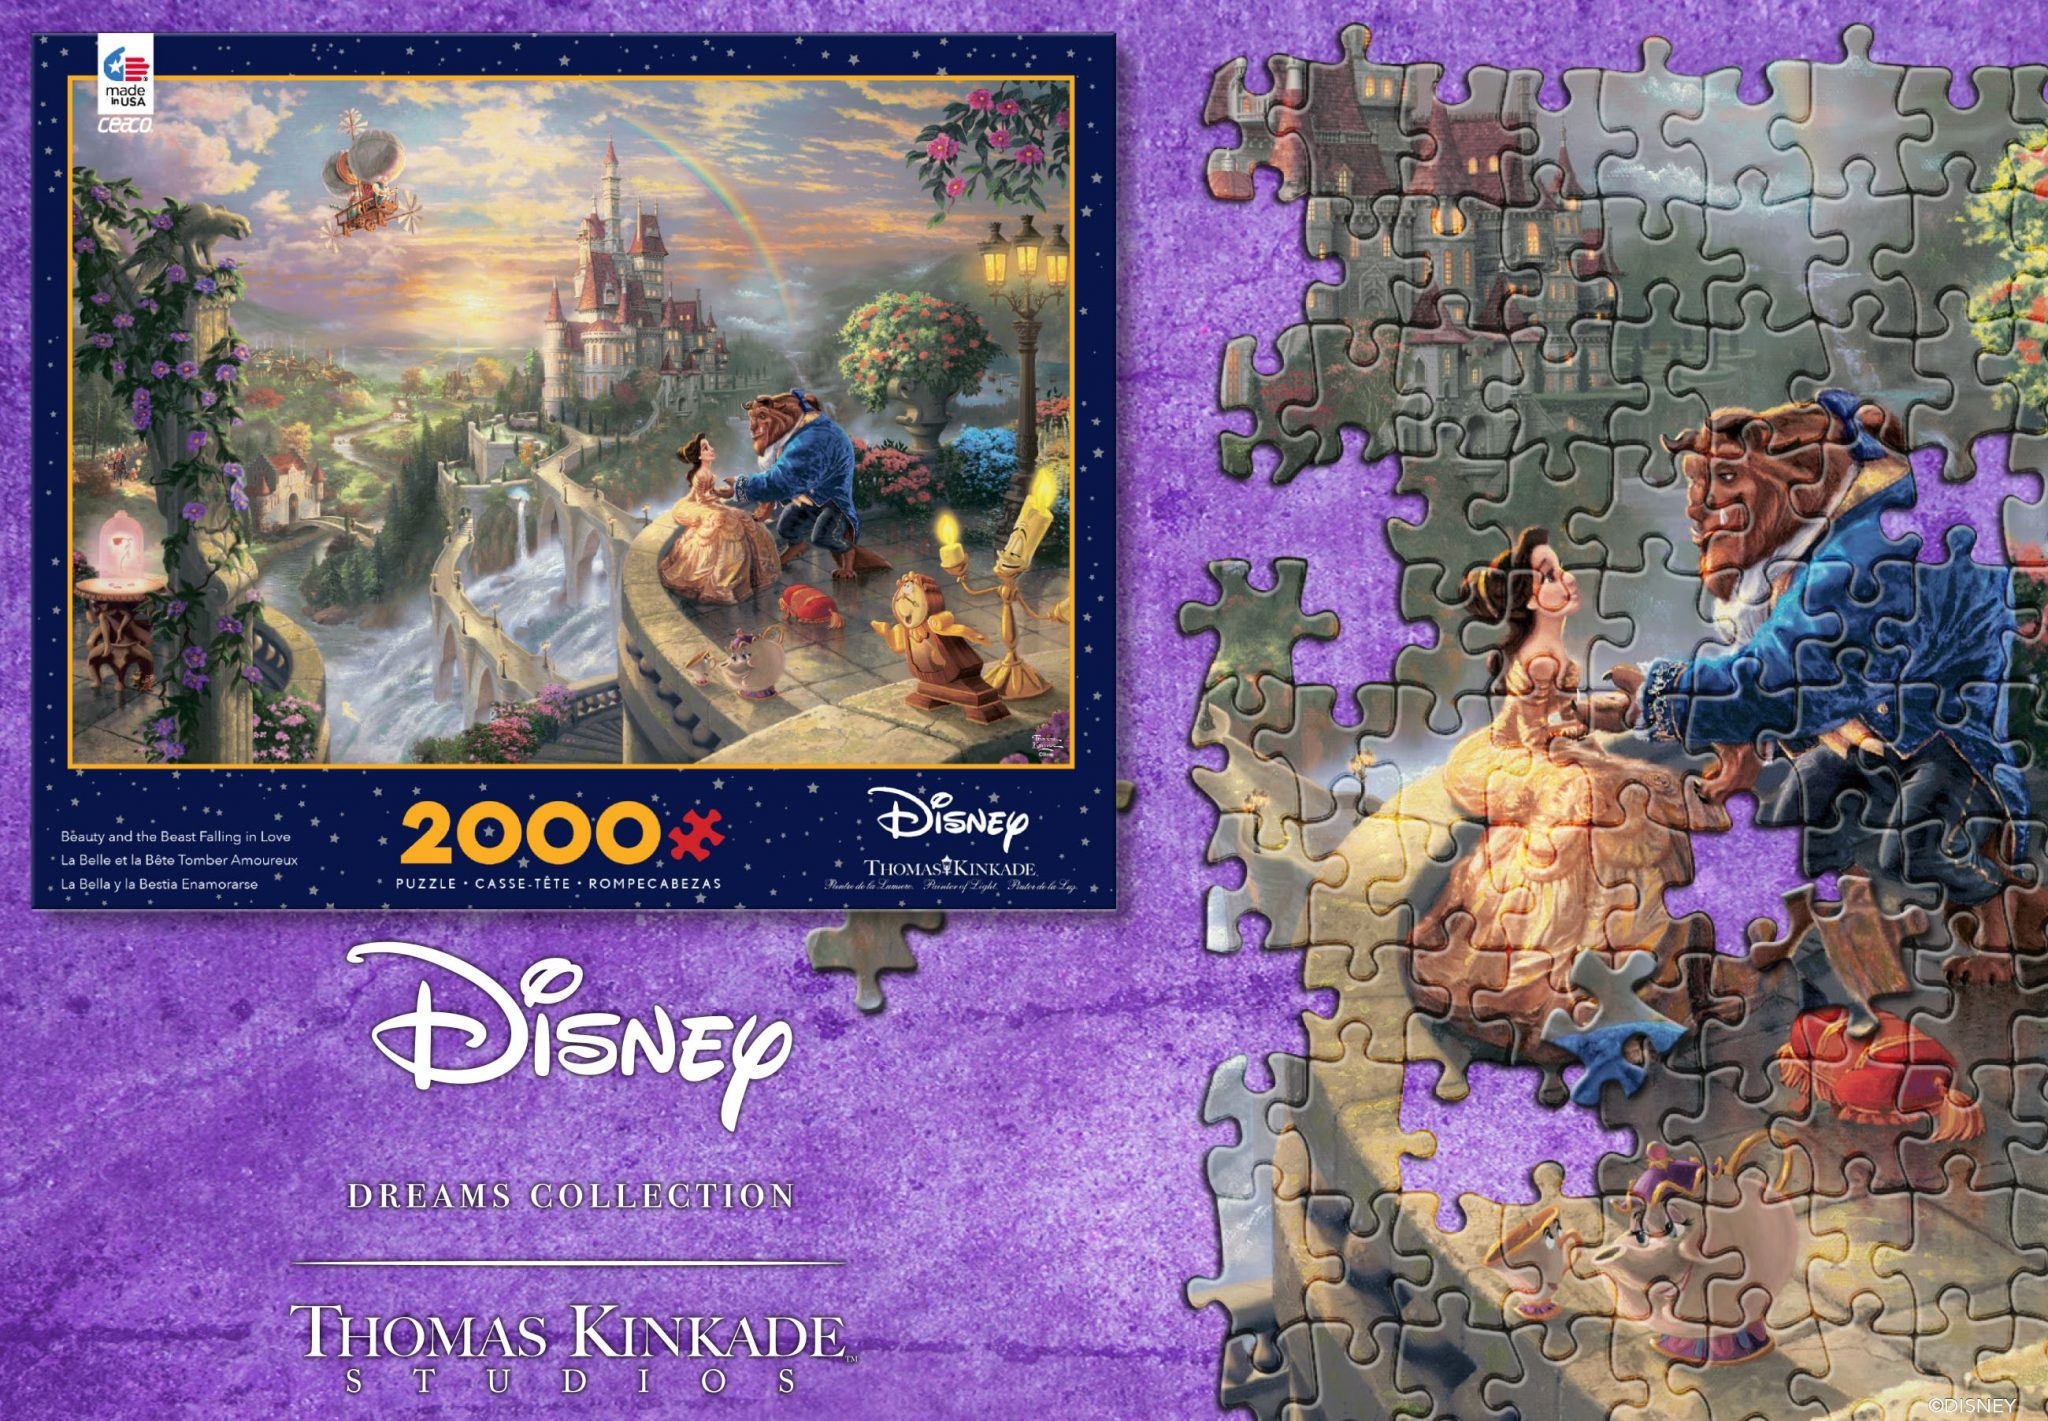 Announcing The Beauty And The Beast Puzzle Giveaway Winner The